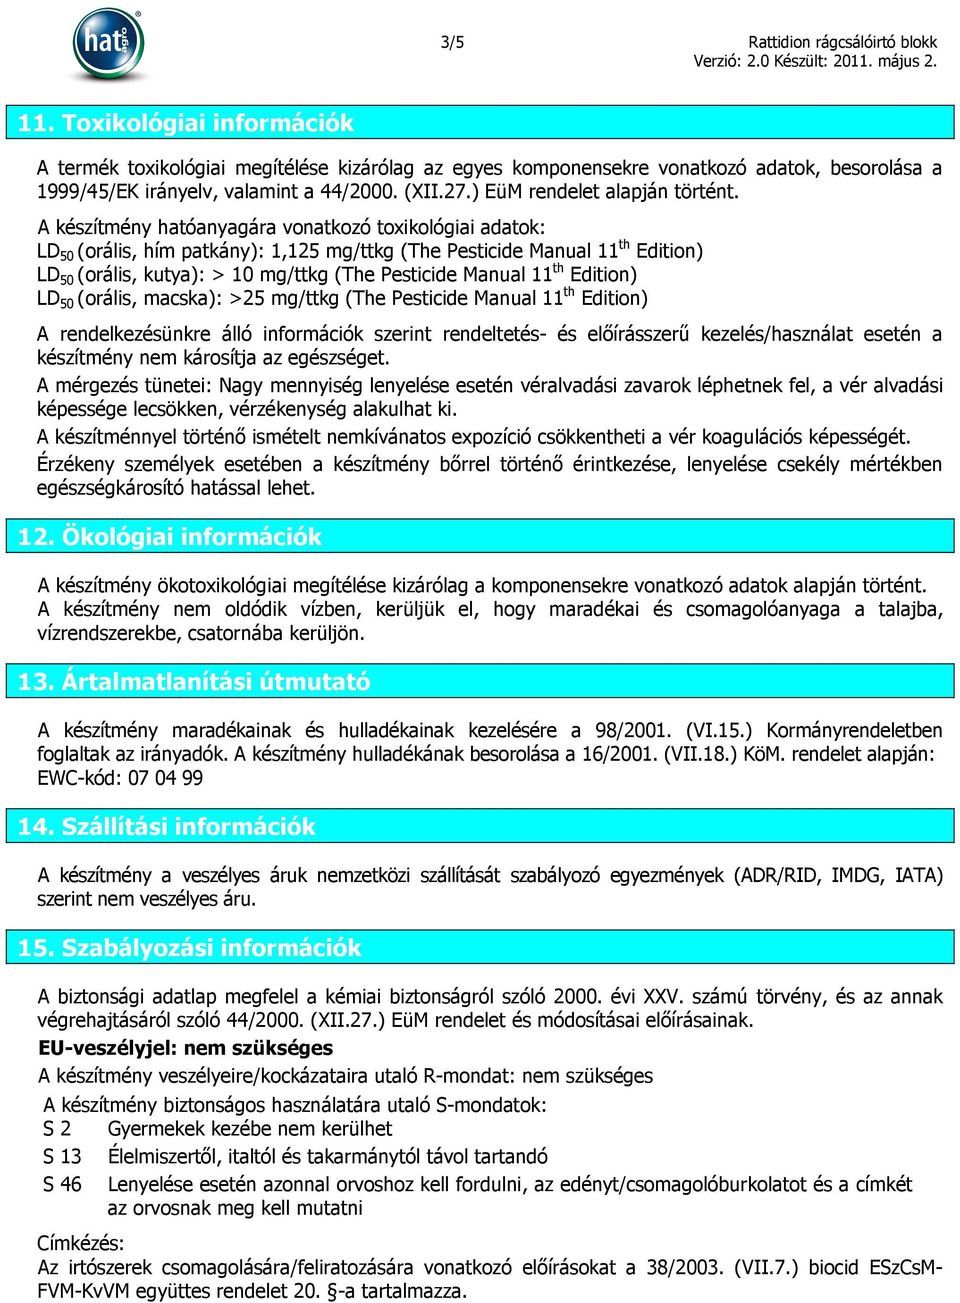 A készítmény hatóanyagára vonatkozó toxikológiai adatok: LD 50 (orális, hím patkány): 1,125 mg/ttkg (The Pesticide Manual 11 th Edition) LD 50 (orális, kutya): > 10 mg/ttkg (The Pesticide Manual 11